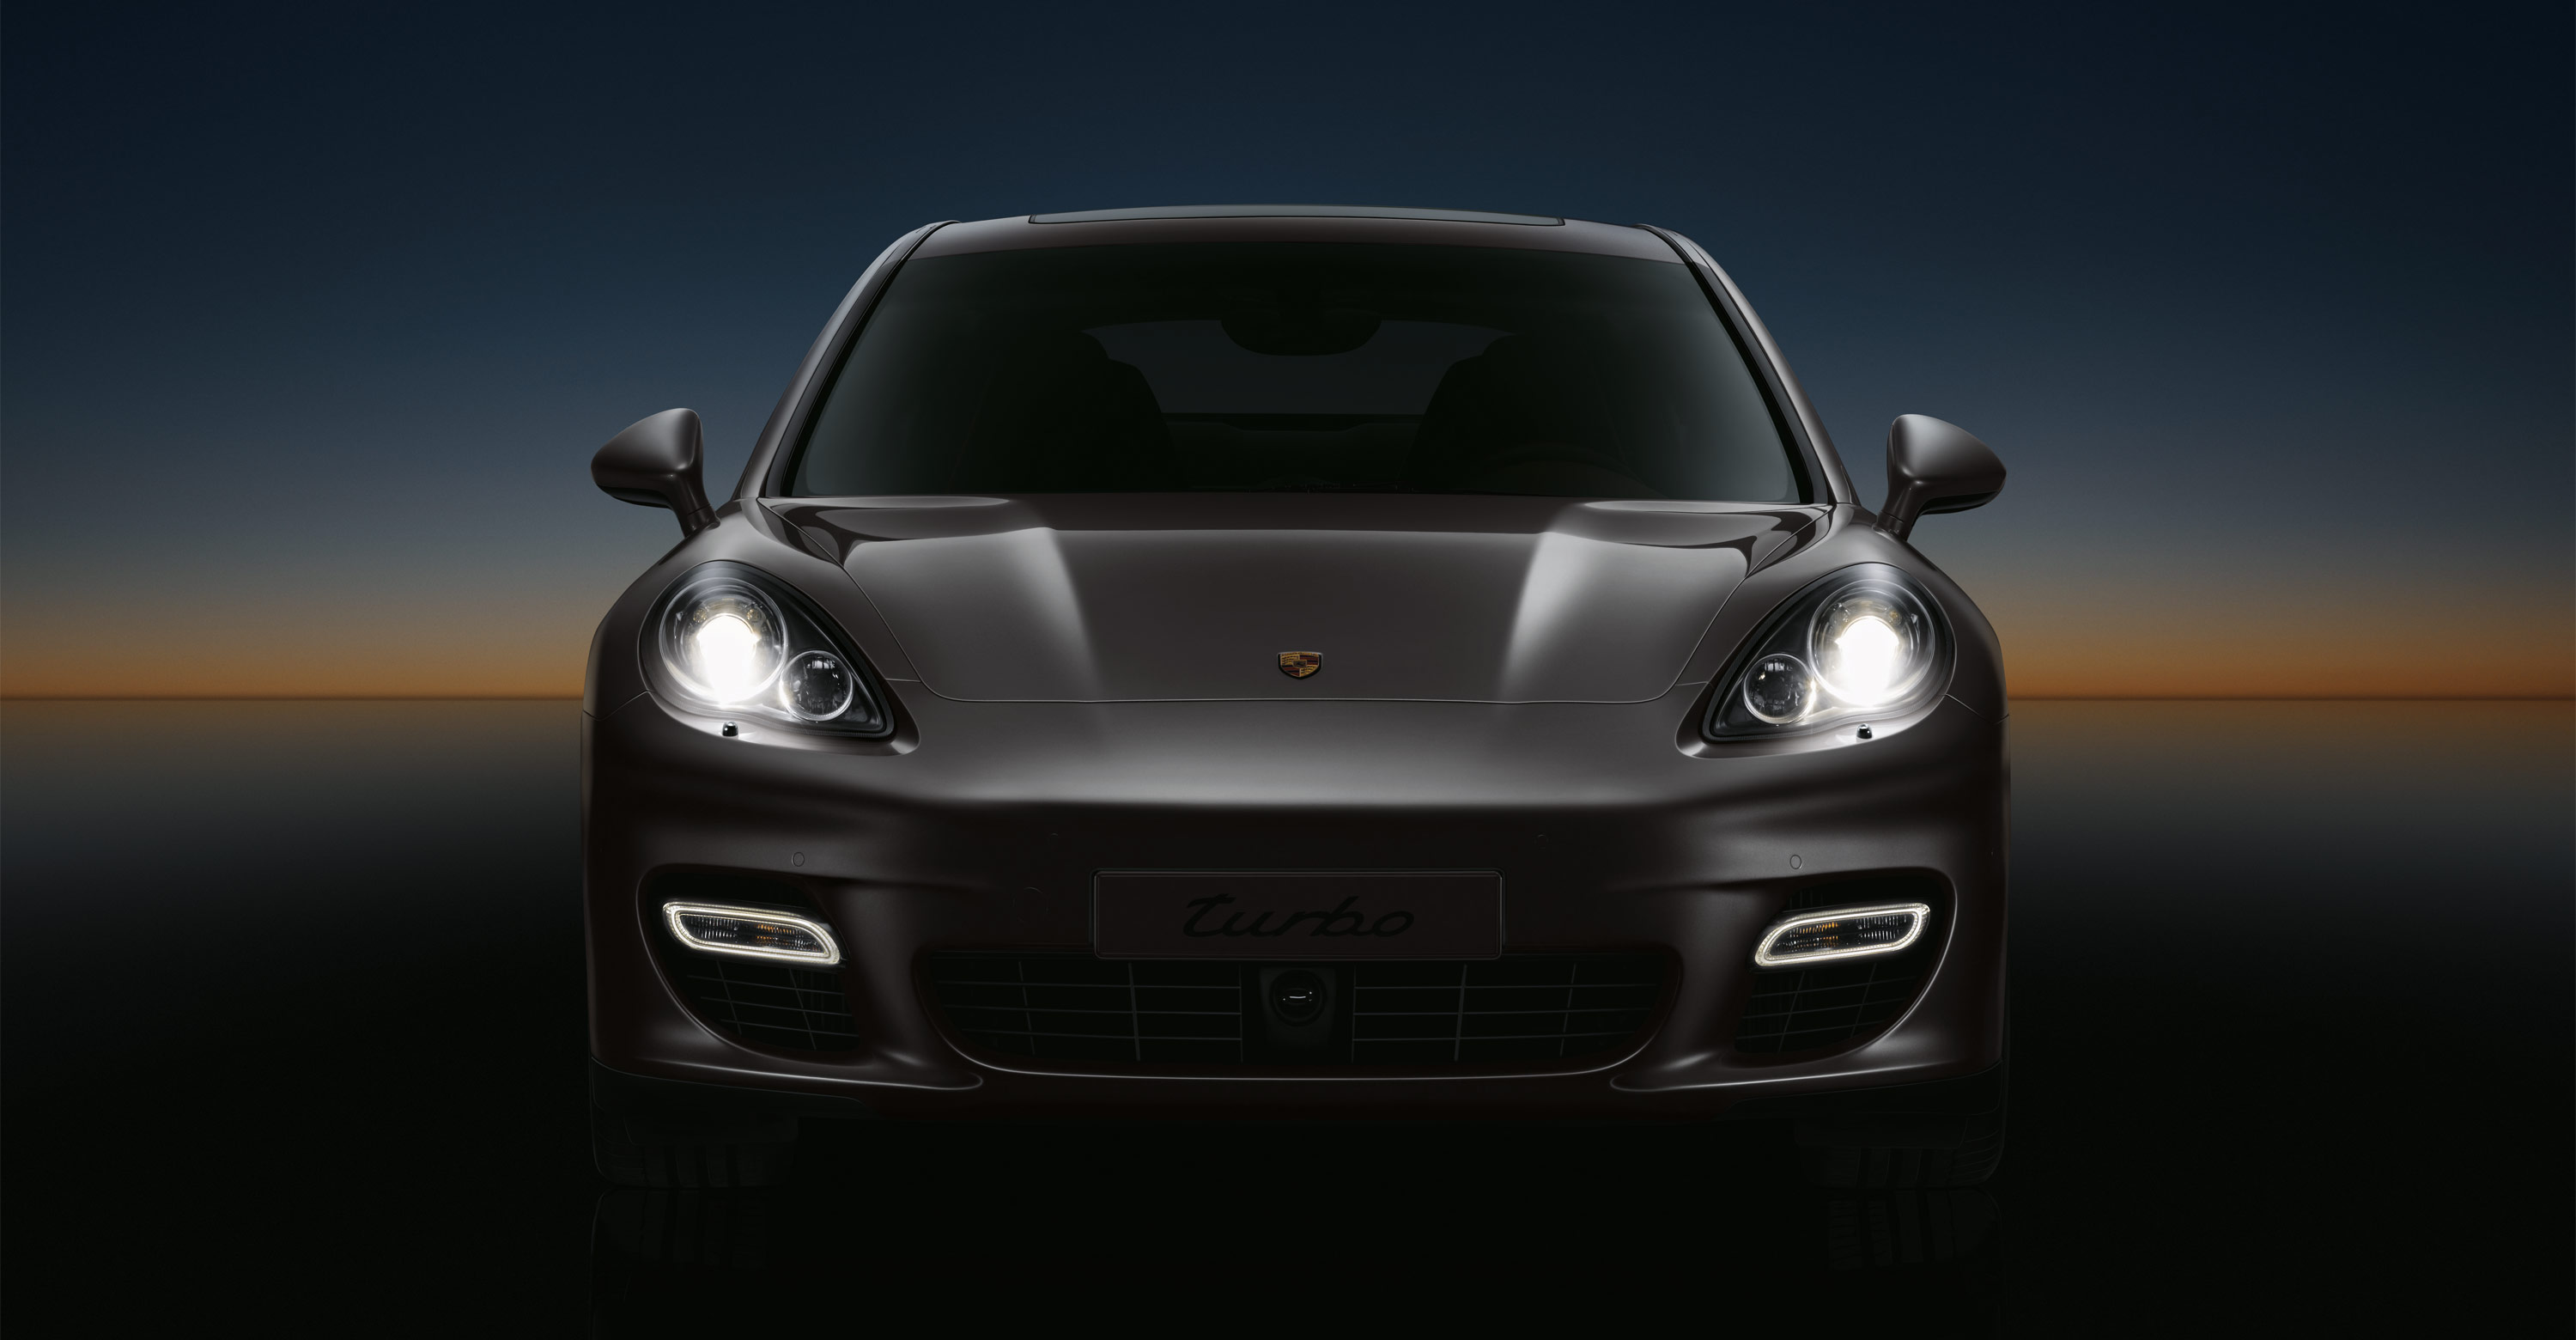 The new 2011 Porsche Panamera Turbo S is coming in April